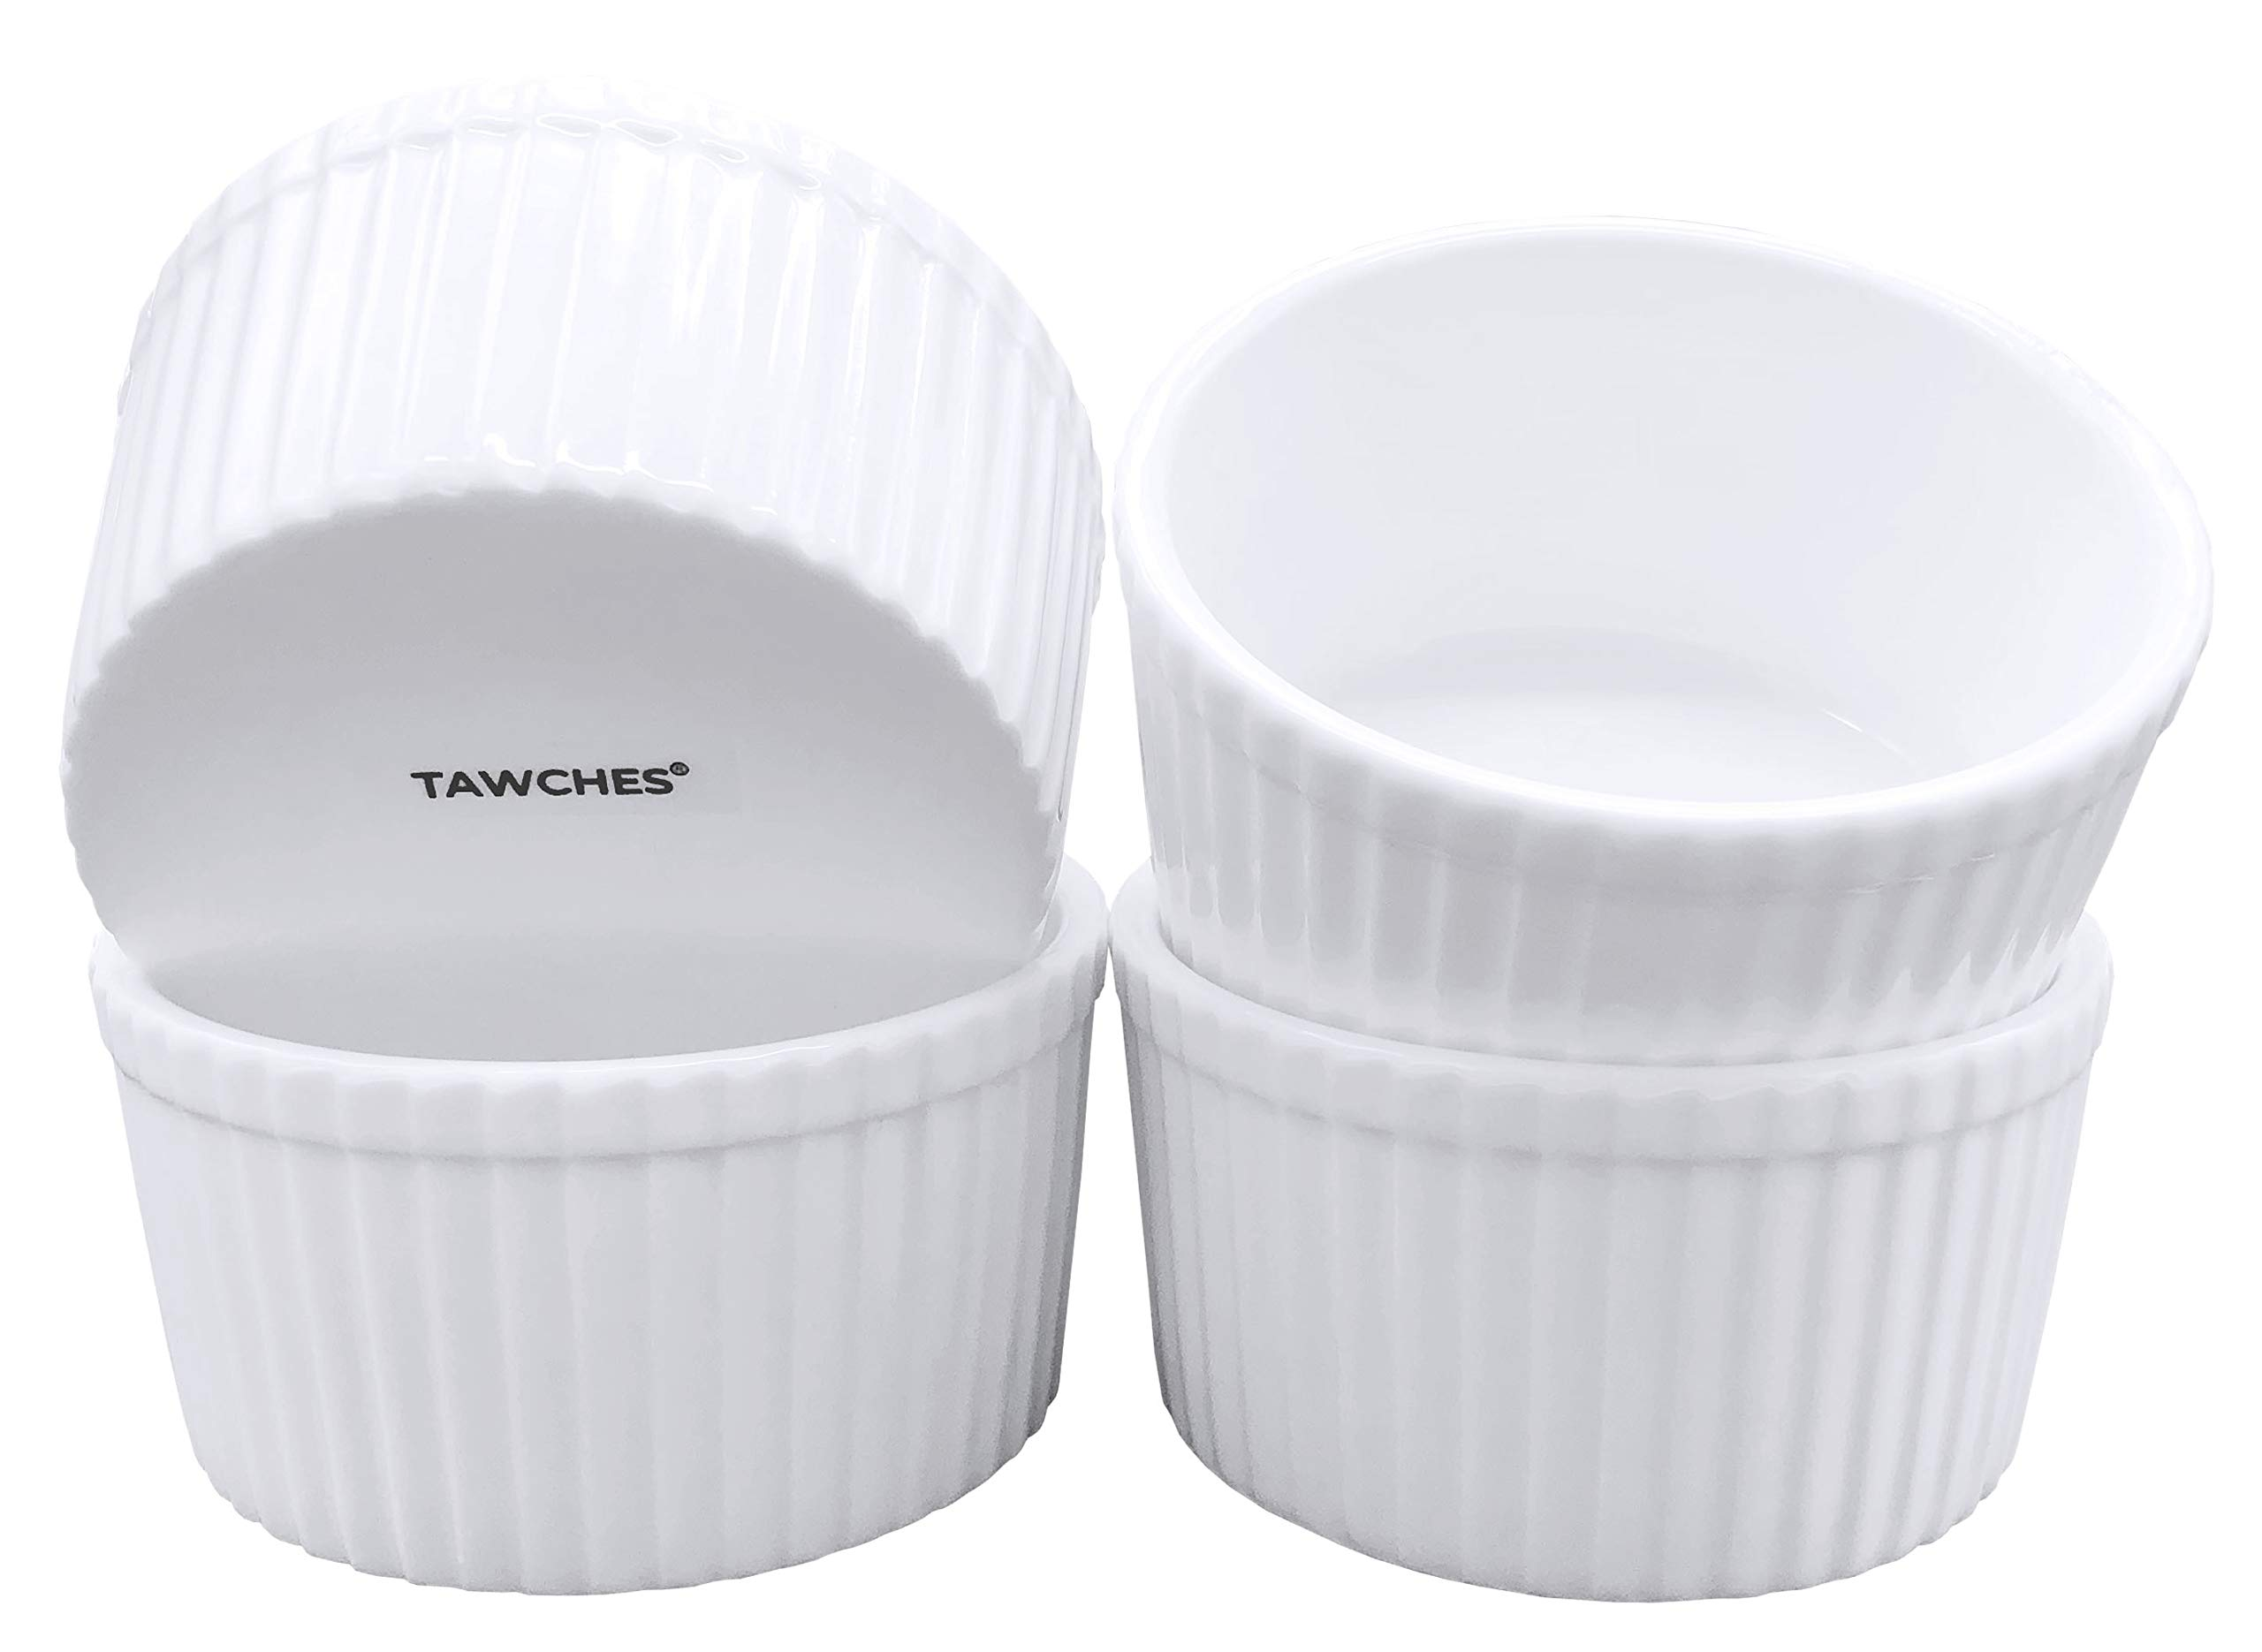 Bone China Ramekins for Baking, White Pudding Cups Custard Cups for Cooking and Serving,Safer and Healthier Ware TAWCHES TS001 (6oz 4pcs) by TAWCHES